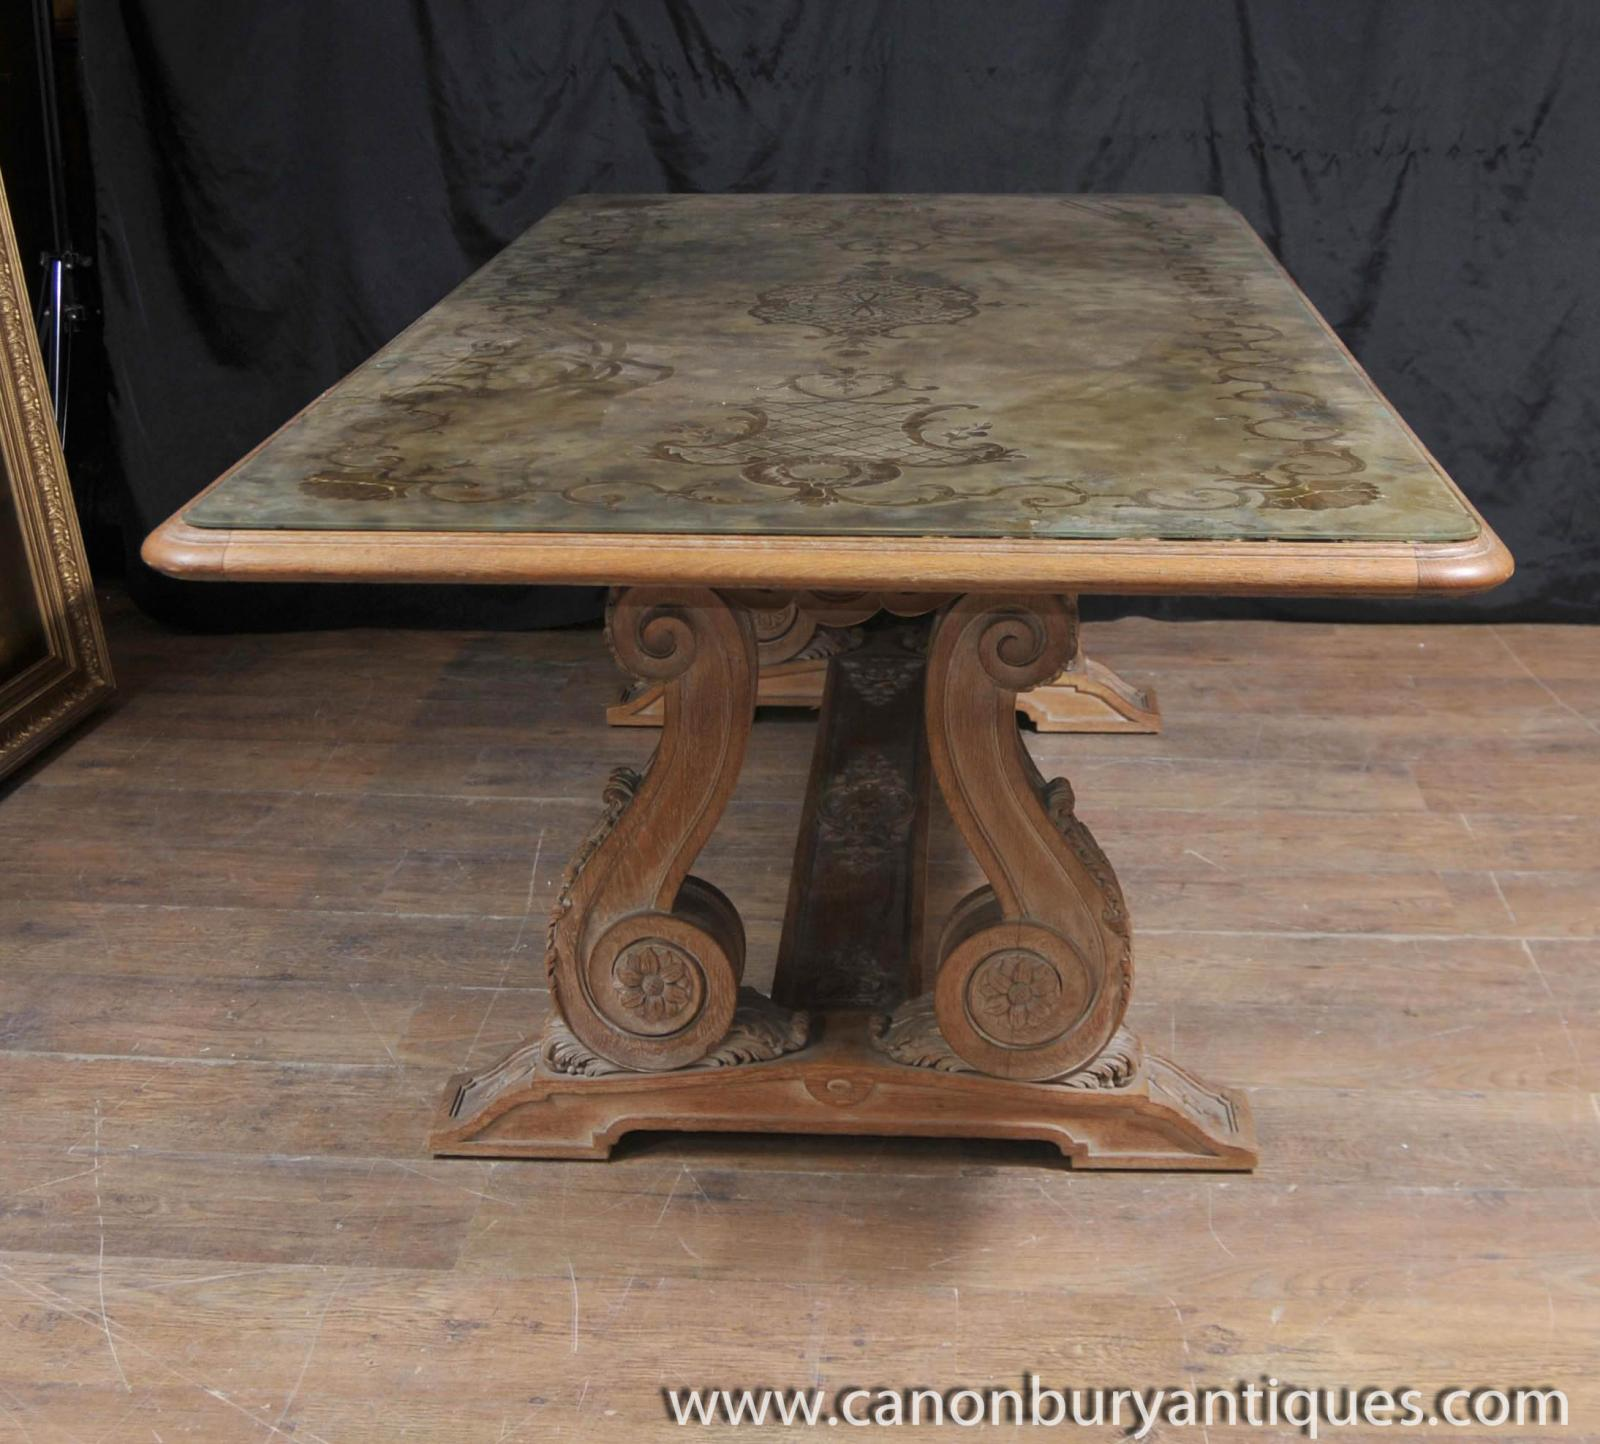 Antique French Art Nouveau Eglomise Dining Table Glass  : Antique20French20Art20Nouveau20Eglomise20Dining20Table20Glass20Topped20Inlay 1384149711 zoom 92 from www.ebay.co.uk size 1600 x 1444 jpeg 217kB